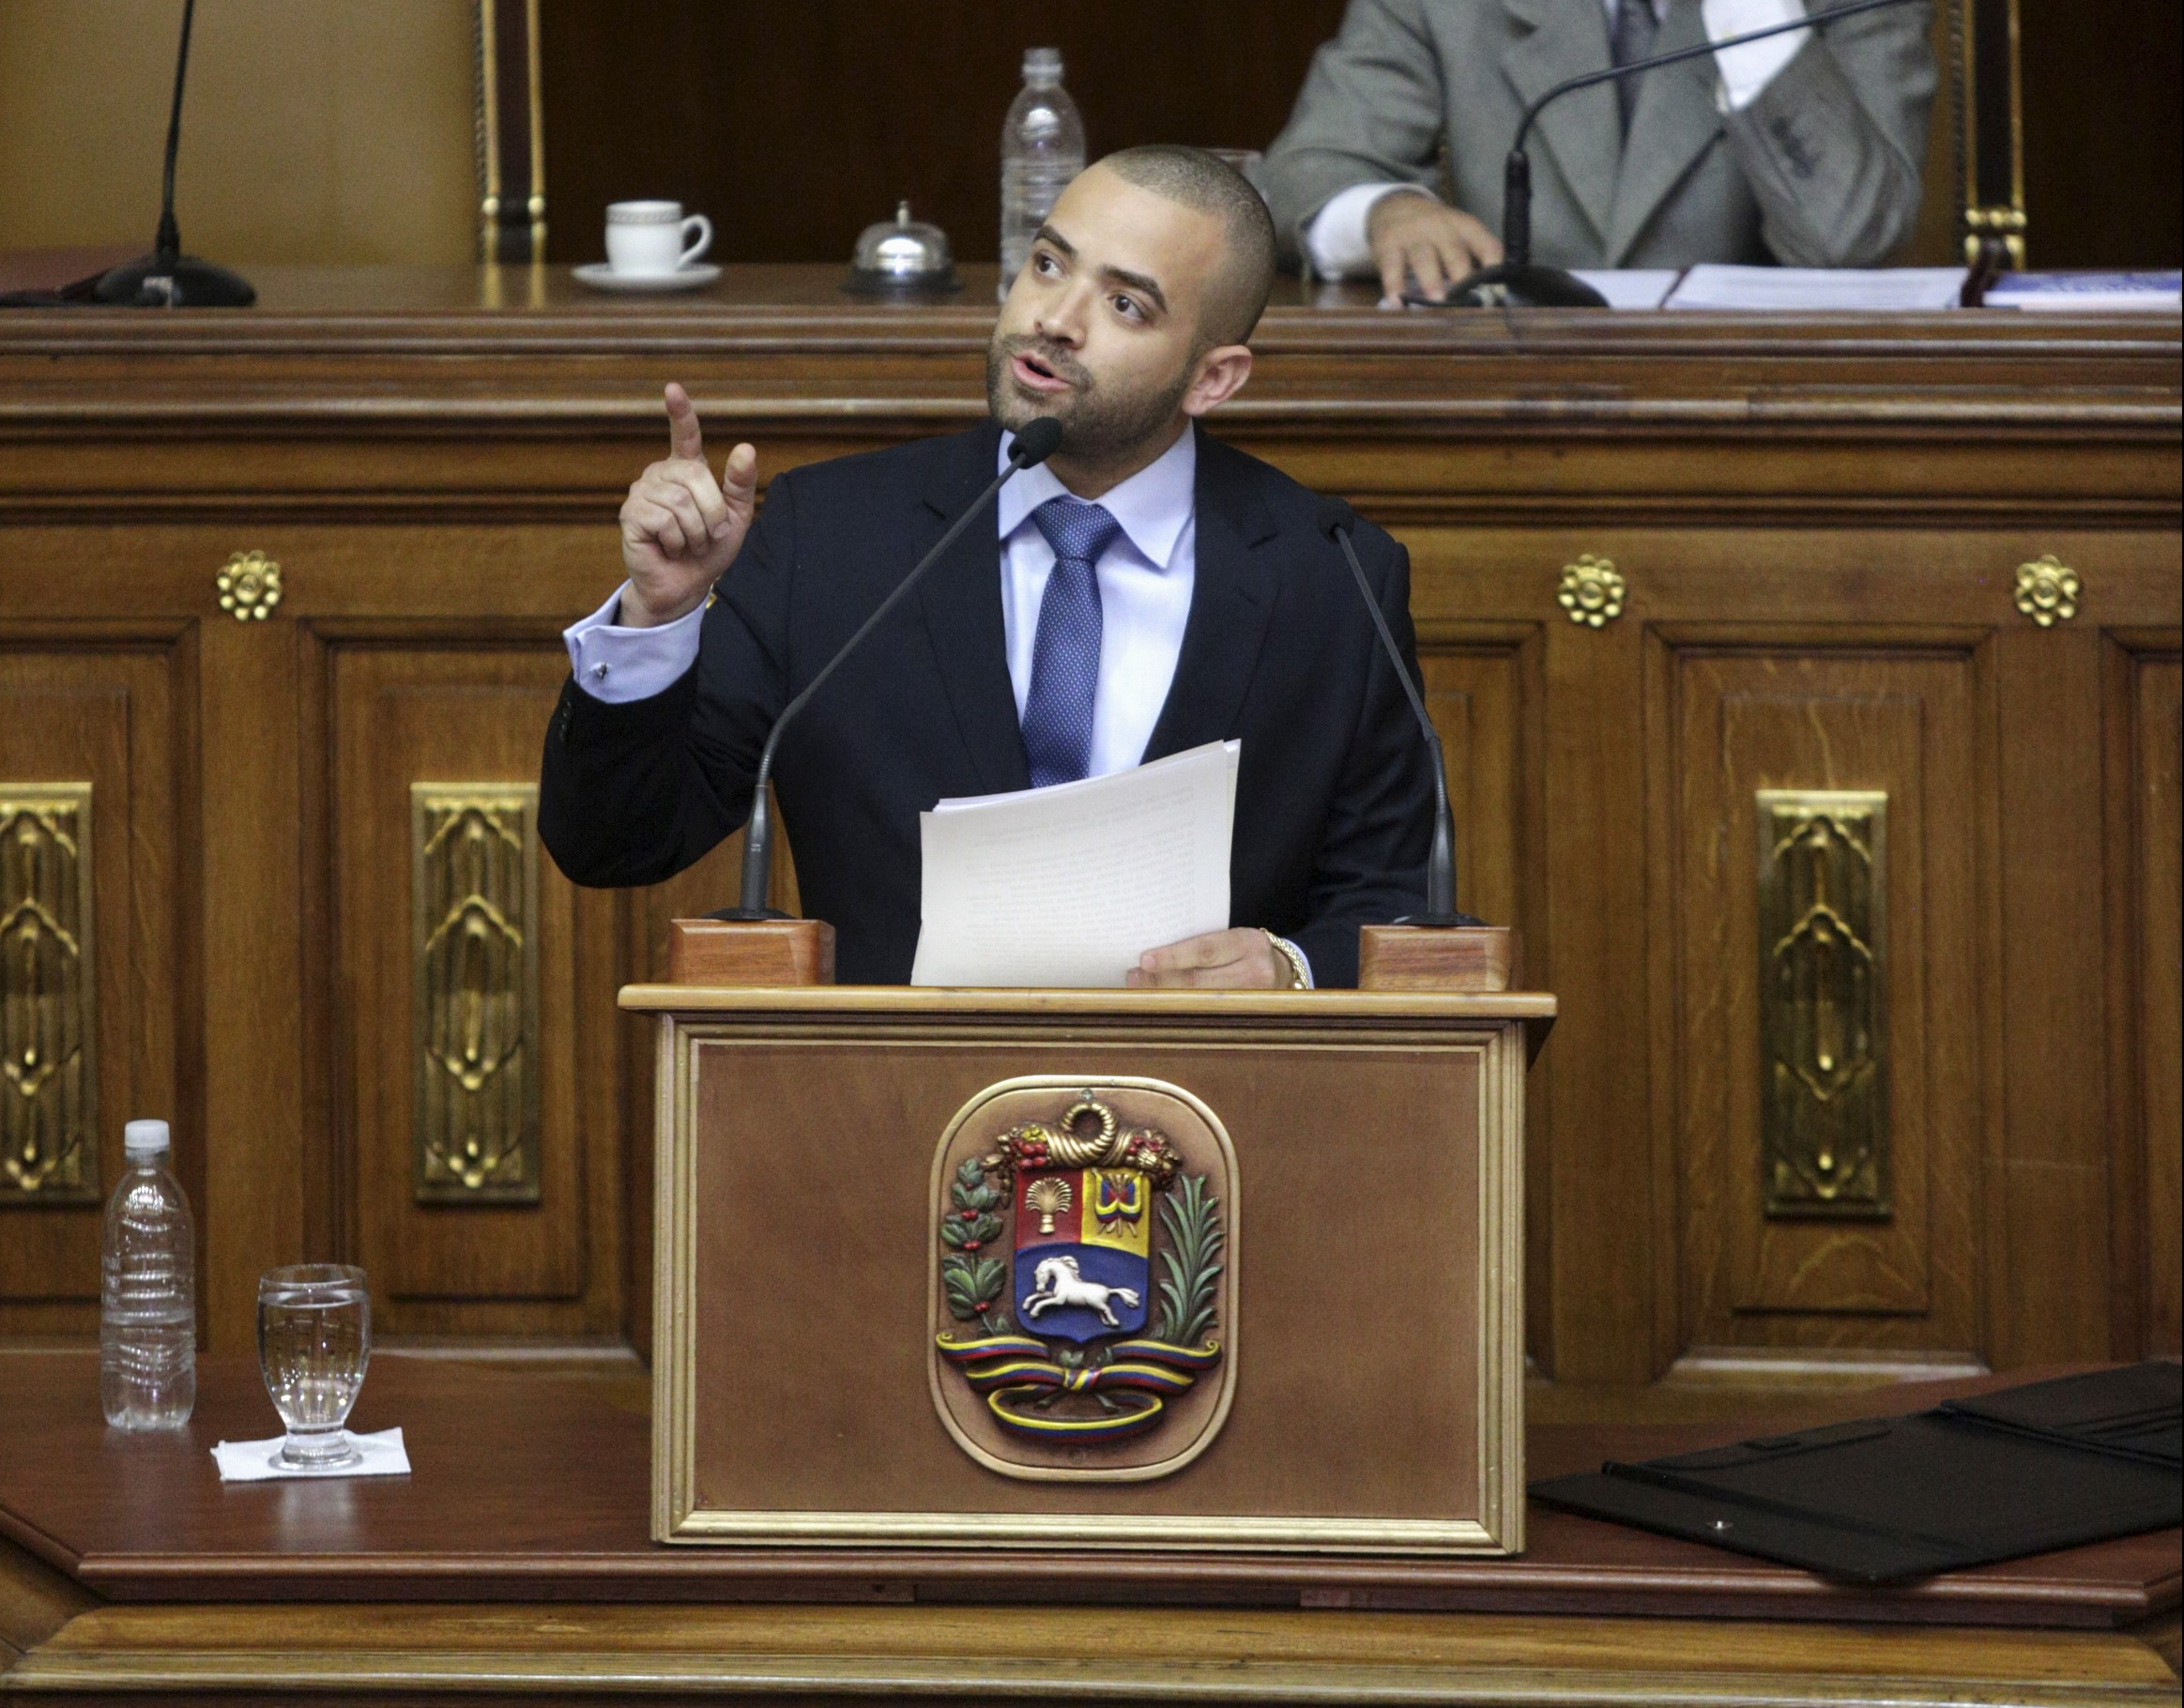 """Venezuelan singer Miguel Ignacio Mendoza (C), known as Nacho, member of pop duo """"Chino & Nacho"""", addresses during the special session of the National Assembly commemorating the Day of the Youth, in front of Henry Ramos, president of the National Assembly and deputy of the Venezuelan coalition of opposition parties (MUD), in Caracas, February 12, 2016. REUTERS/Marco Bello - RTX26PM5"""